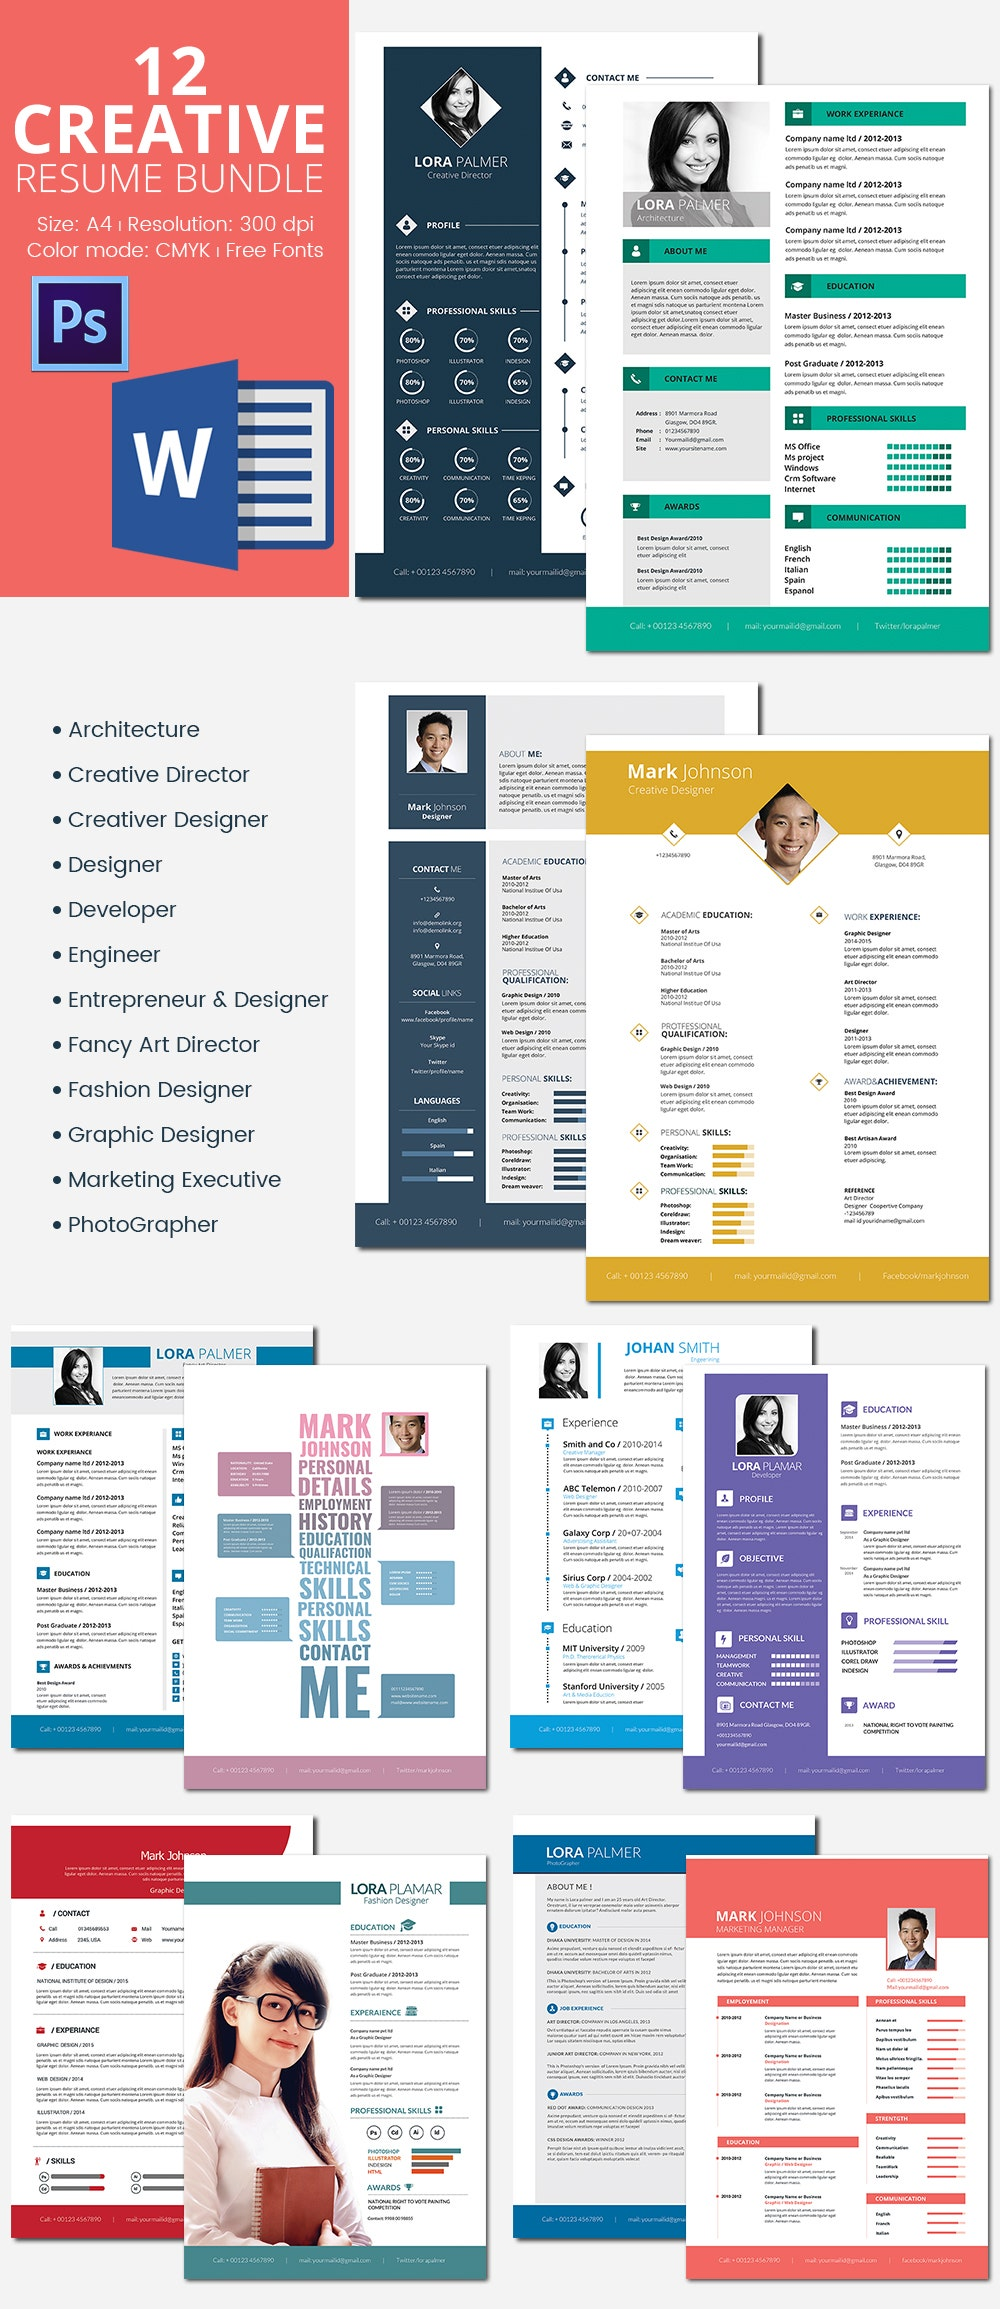 16 civil engineer resume templates – free samples psd example